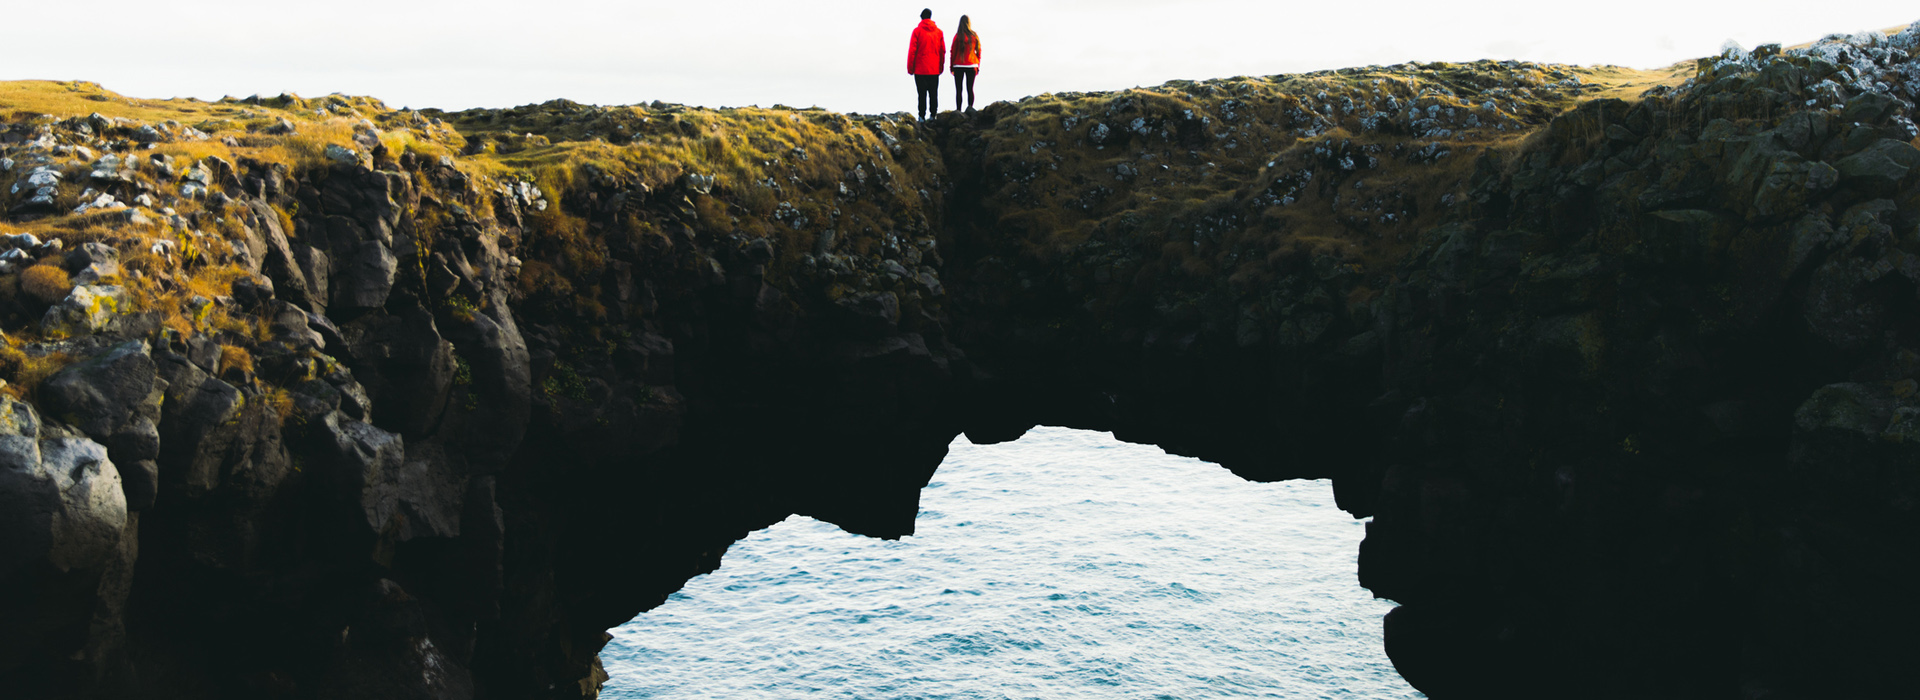 People standing on top of Gatklettur-Arch Rock in Snaefellsnes peninsula, Iceland